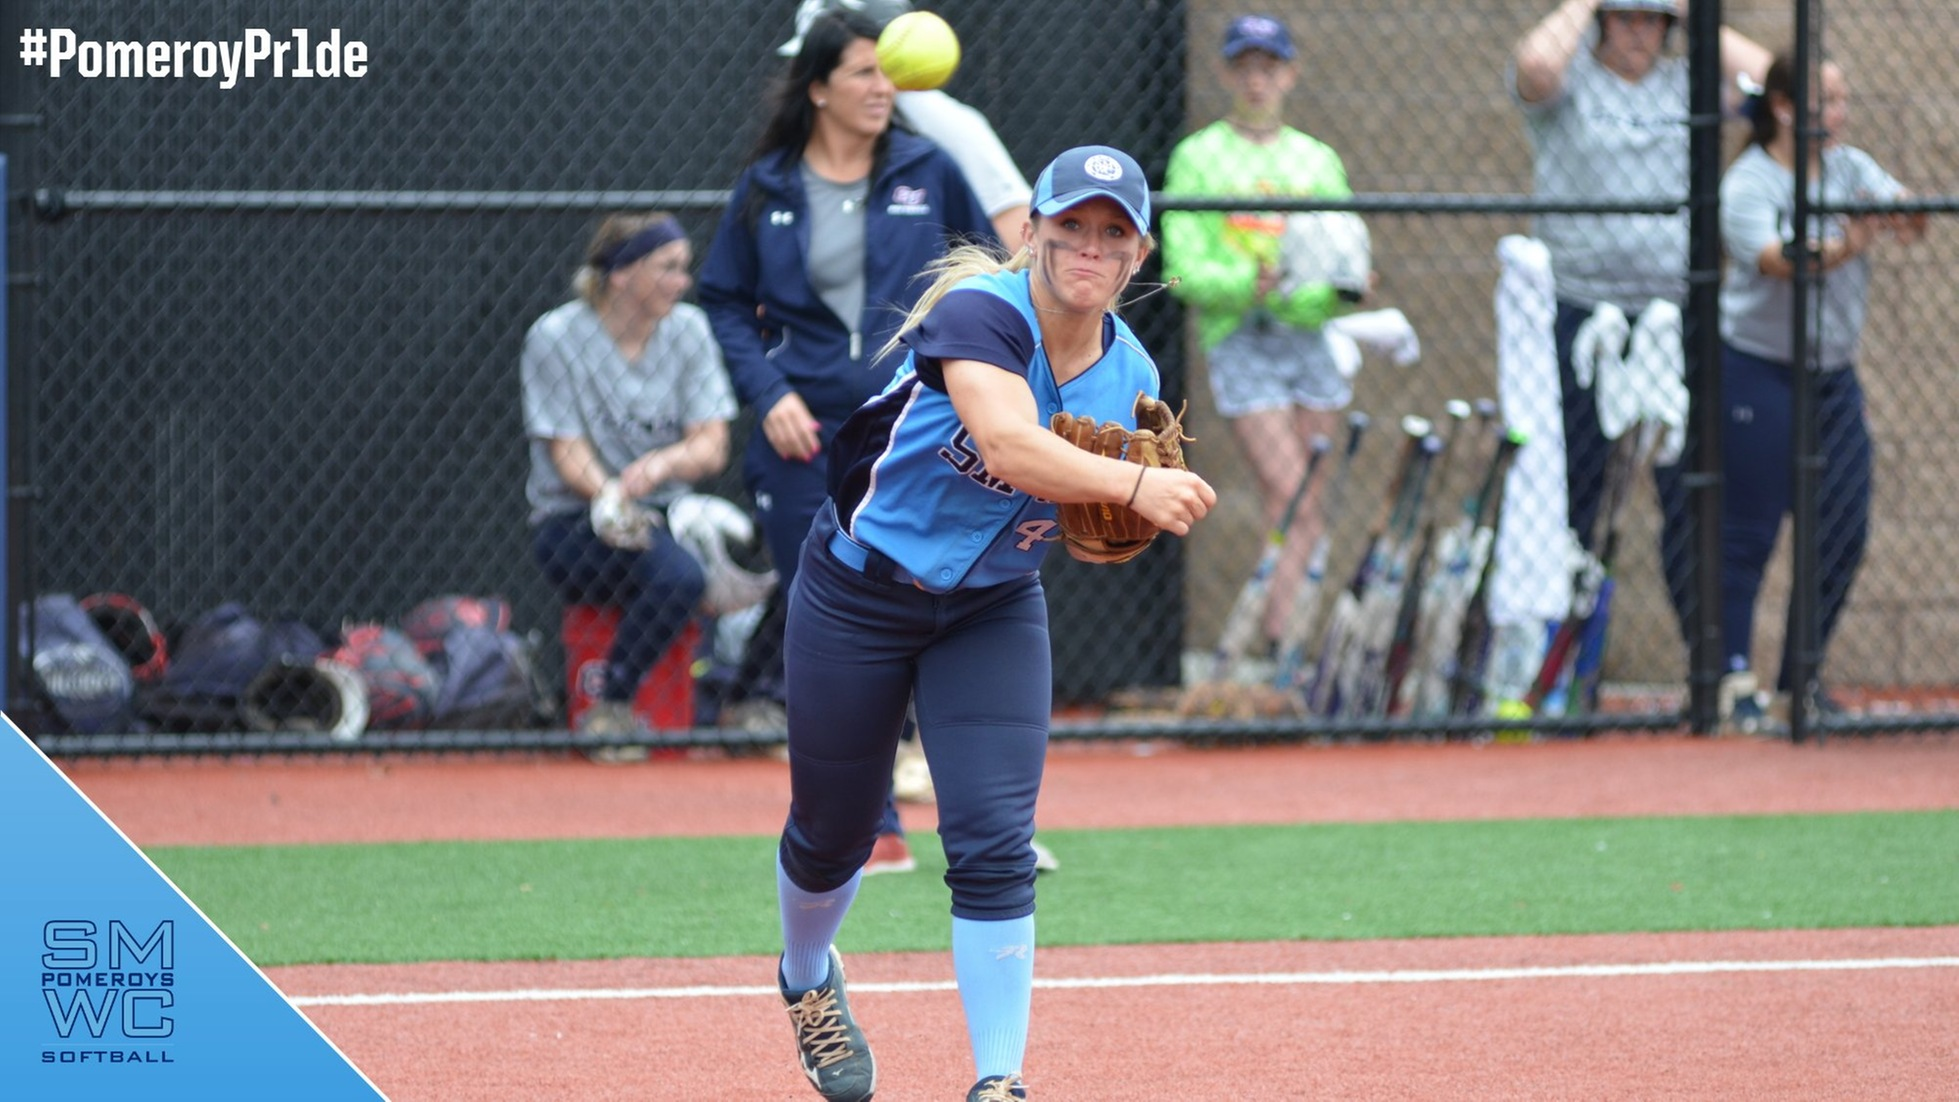 SMWC Softball Concludes Spring Training; Pomeroys Defeated By LTU & CUAA